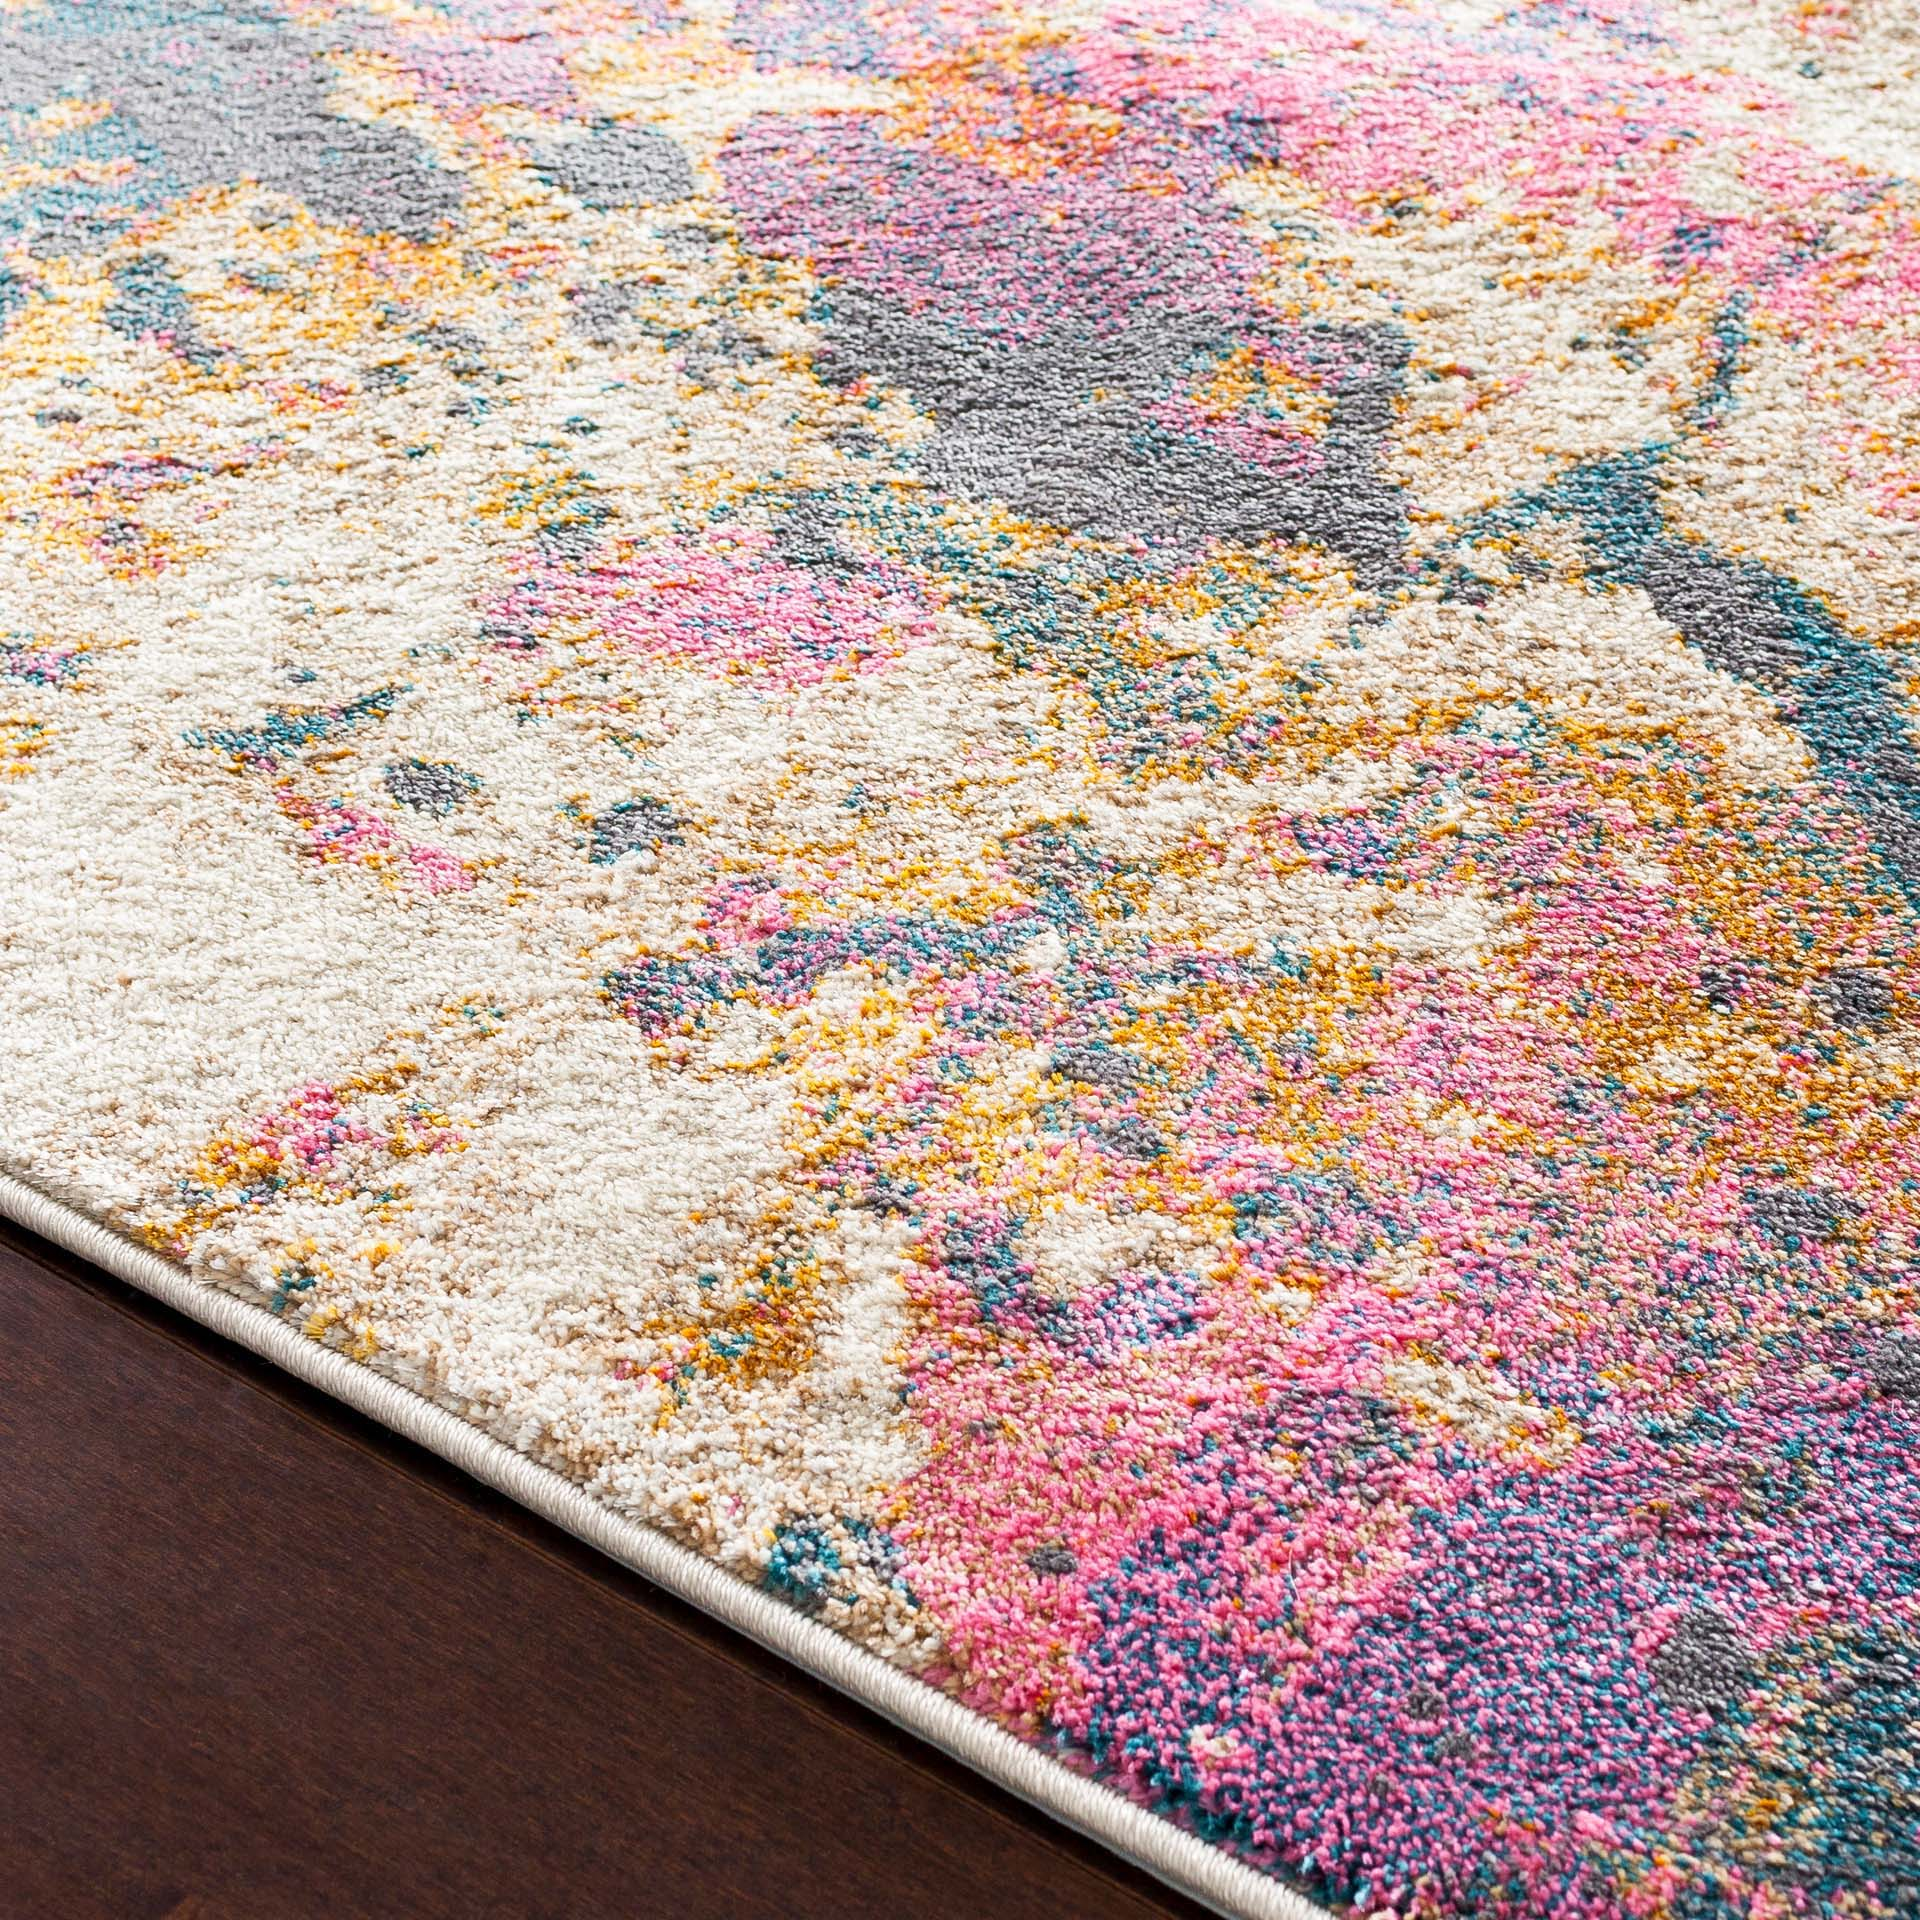 Abstract Turkish cream rug with splashes of pink, teal and orange- Close-up